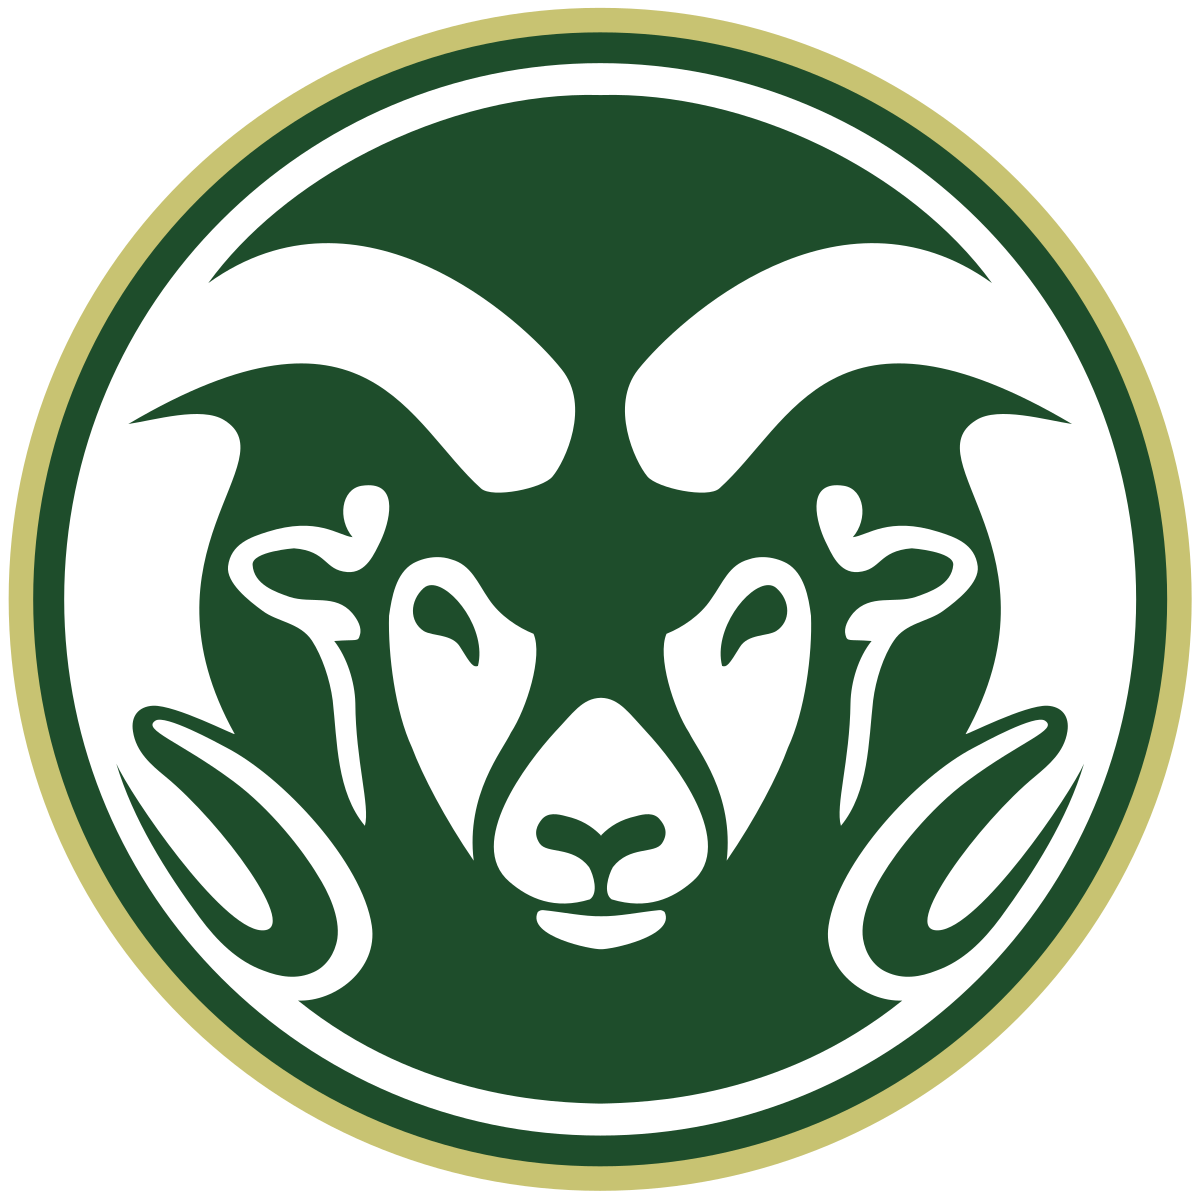 Colorado_State.png